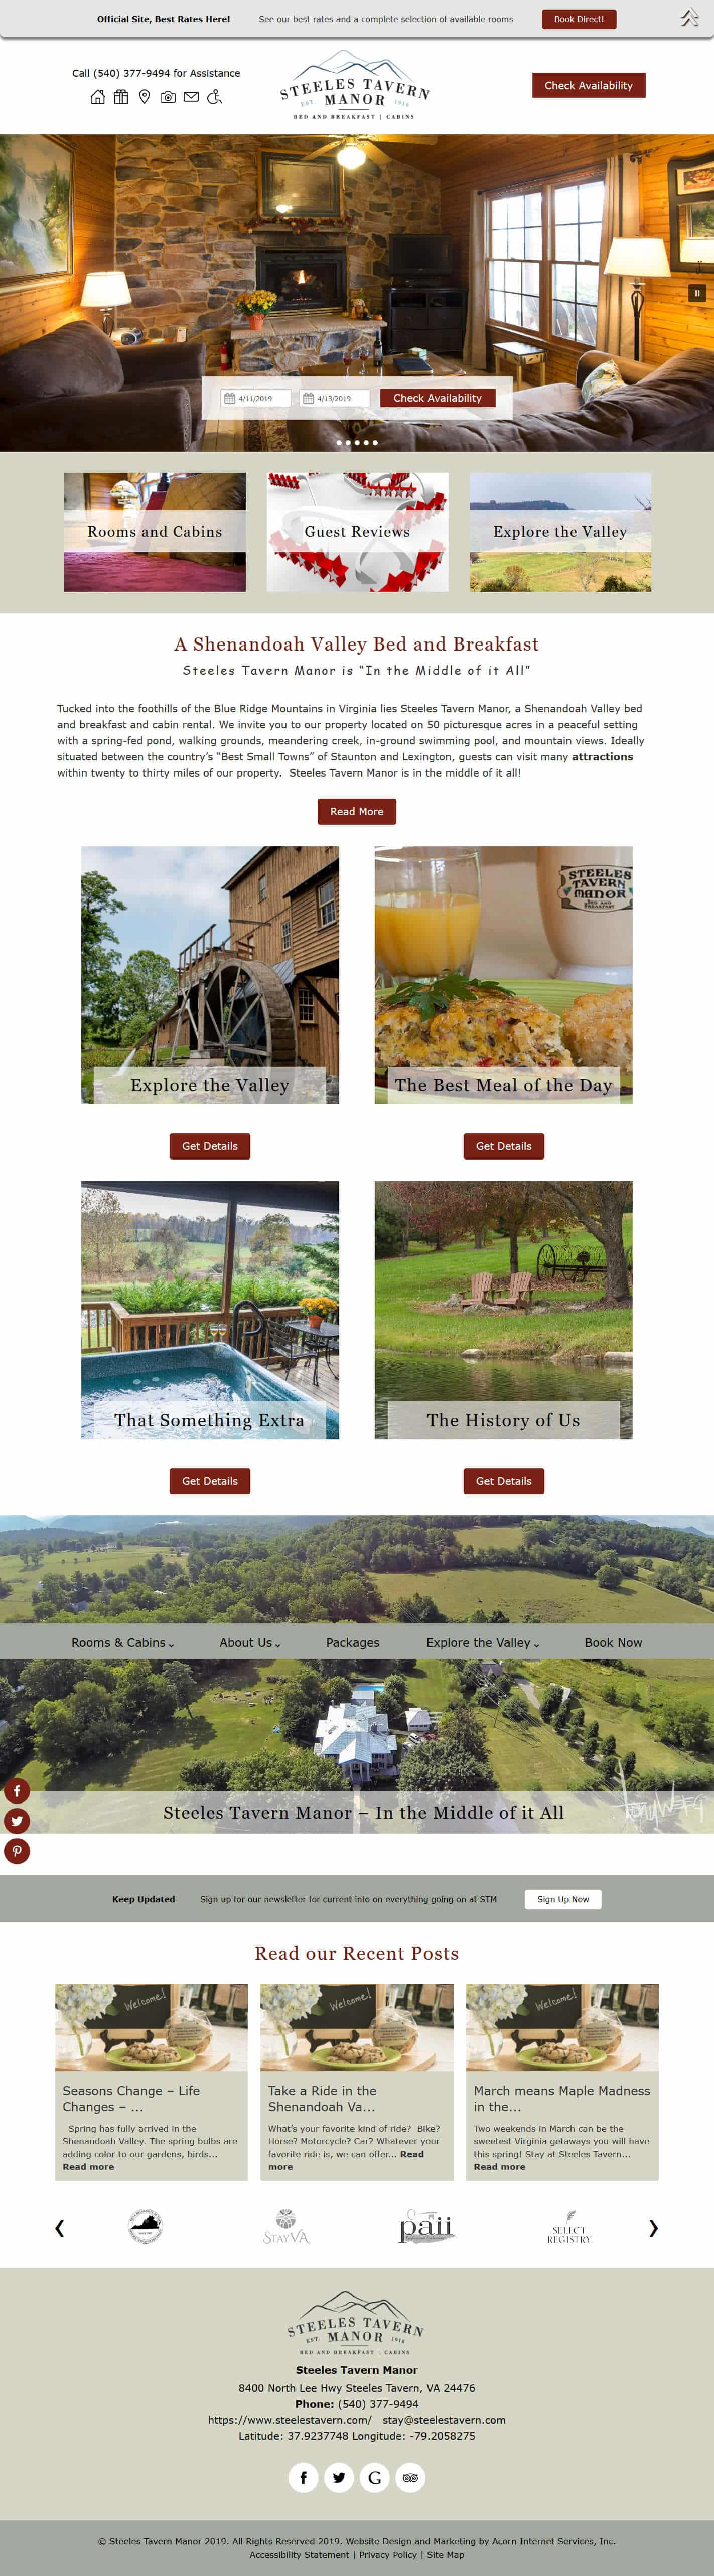 Steeles Tavern Manor website home page